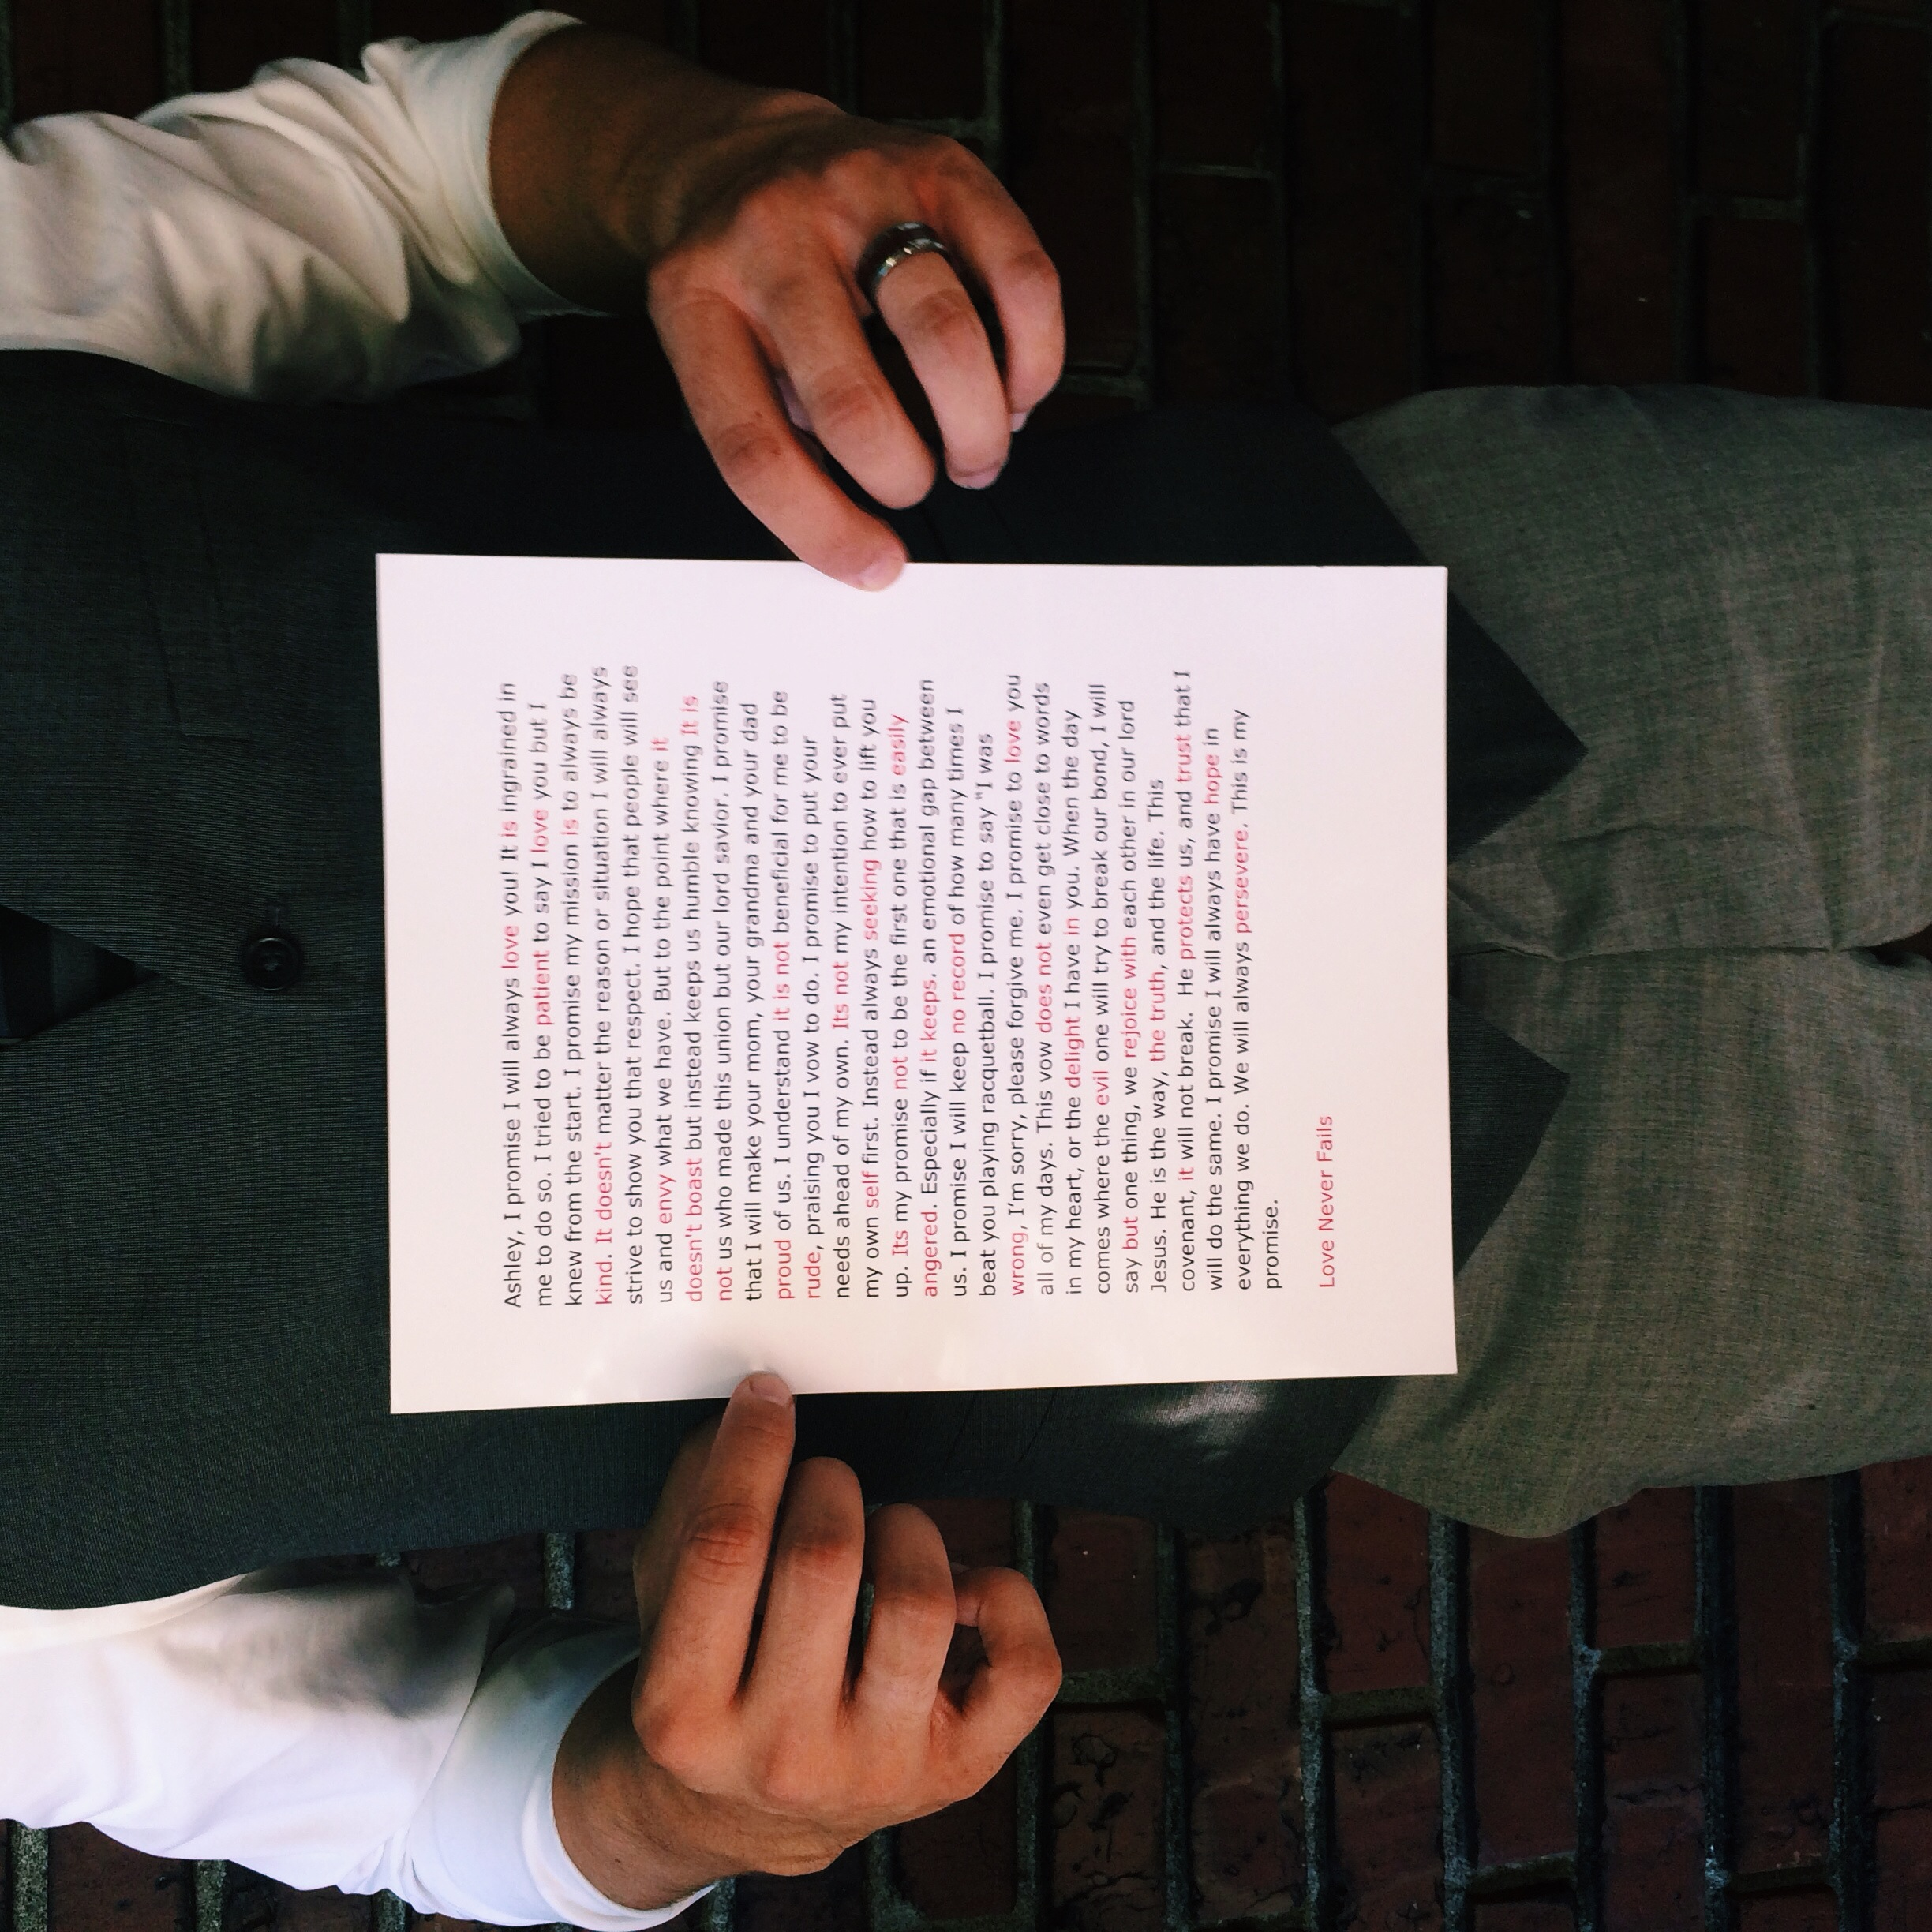 Spencer shows us his one-of-a-kind vows. Then words in red come together to show 1 Corinthians 13:4-8.